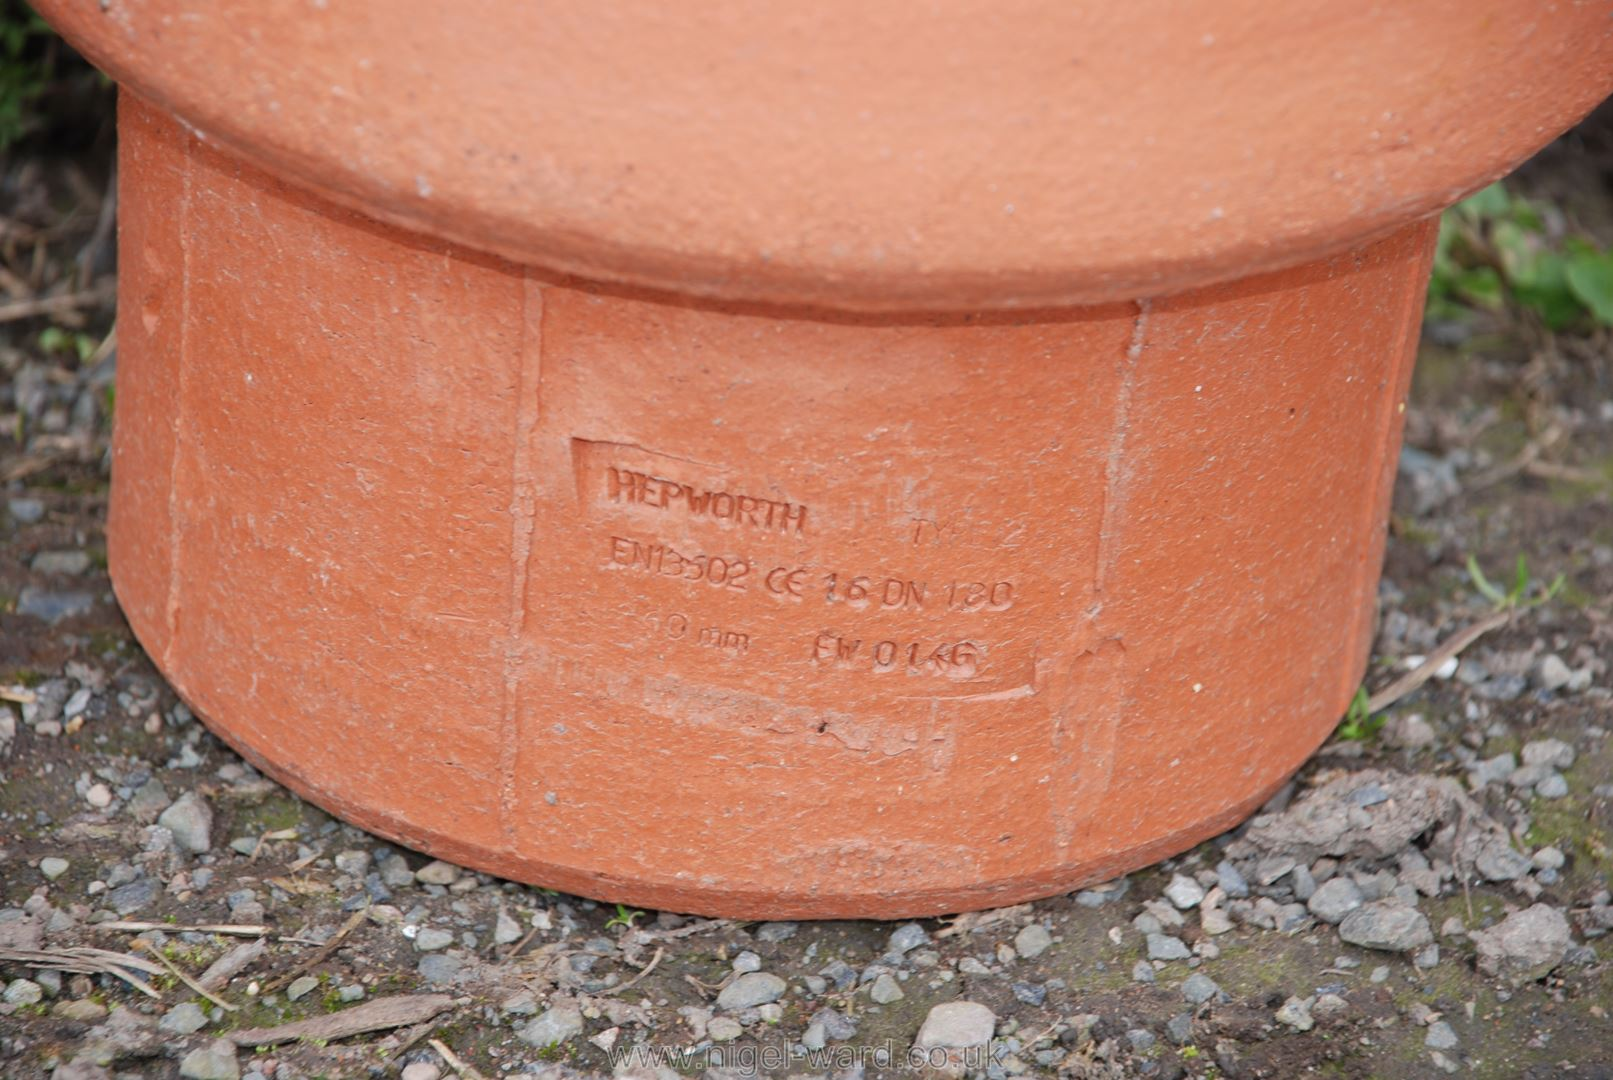 Terracotta chimney cowl - Image 2 of 2